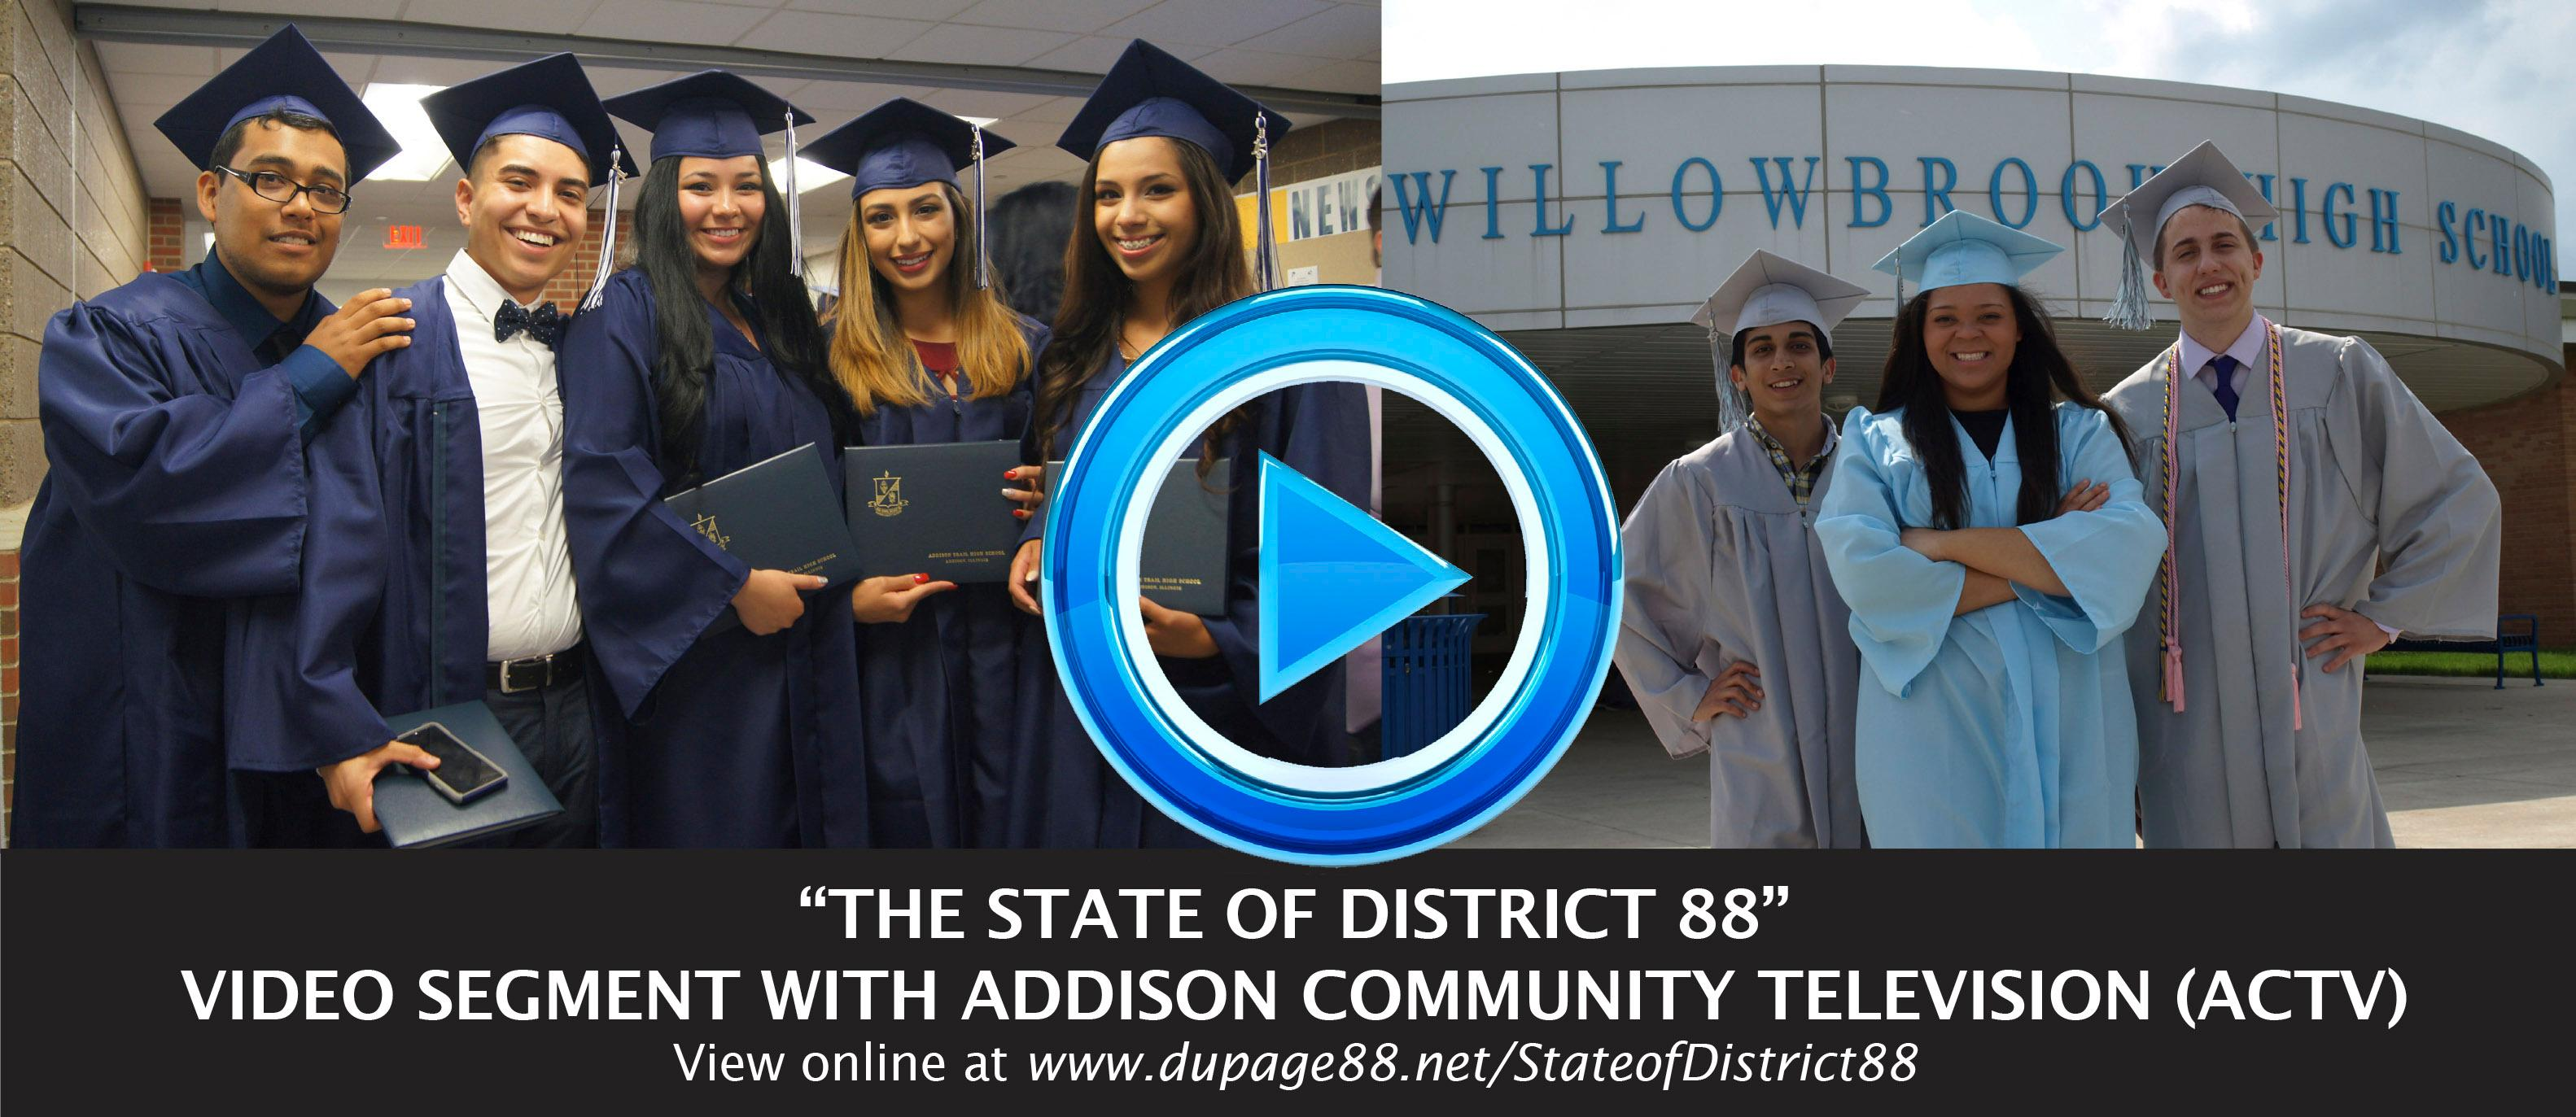 District 88 films final 'State of District 88' video segment of 2017-18 school year